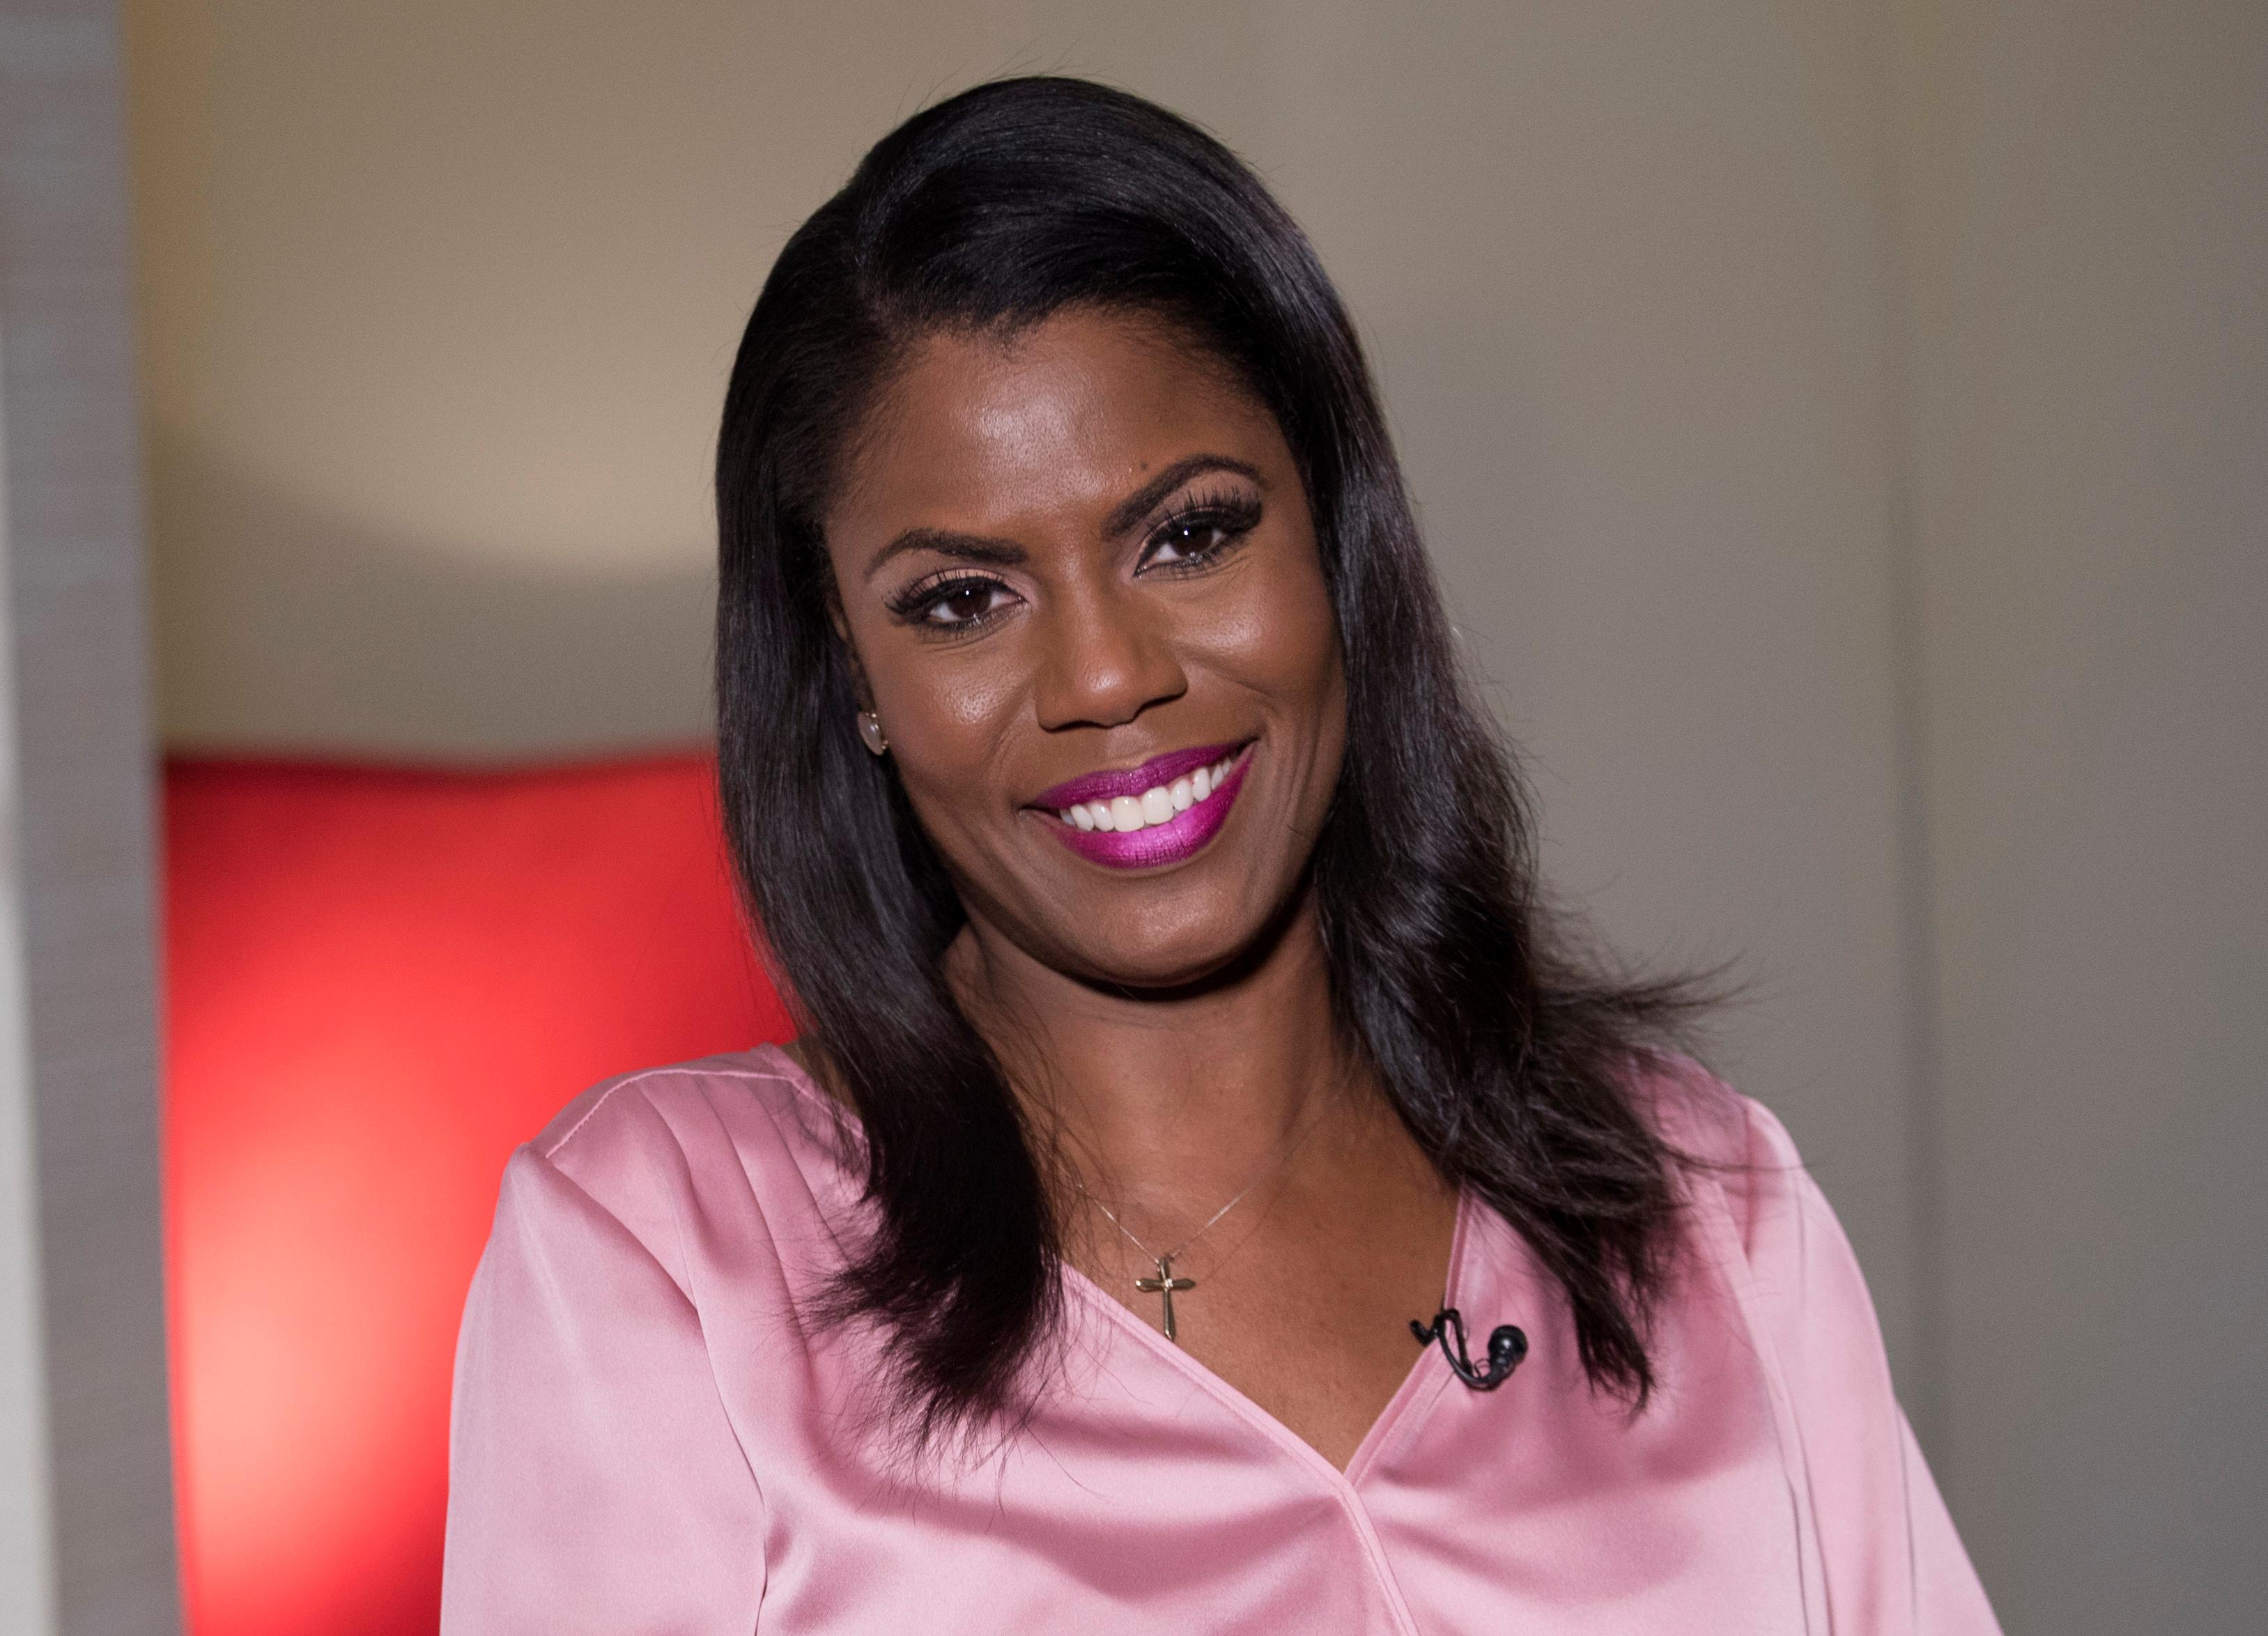 "FILE - In this Aug. 14, 2018, file photo former White House staffer Omarosa Manigault Newman smiles during an interview in New York.  Manigault Newman's ""Unhinged"" sold 34,000 copies, NPD BookScan reported Thursday, Aug. 23. BookScan tracks around 85 percent of the print market. (AP Photo/Mary Altaffer, File)"